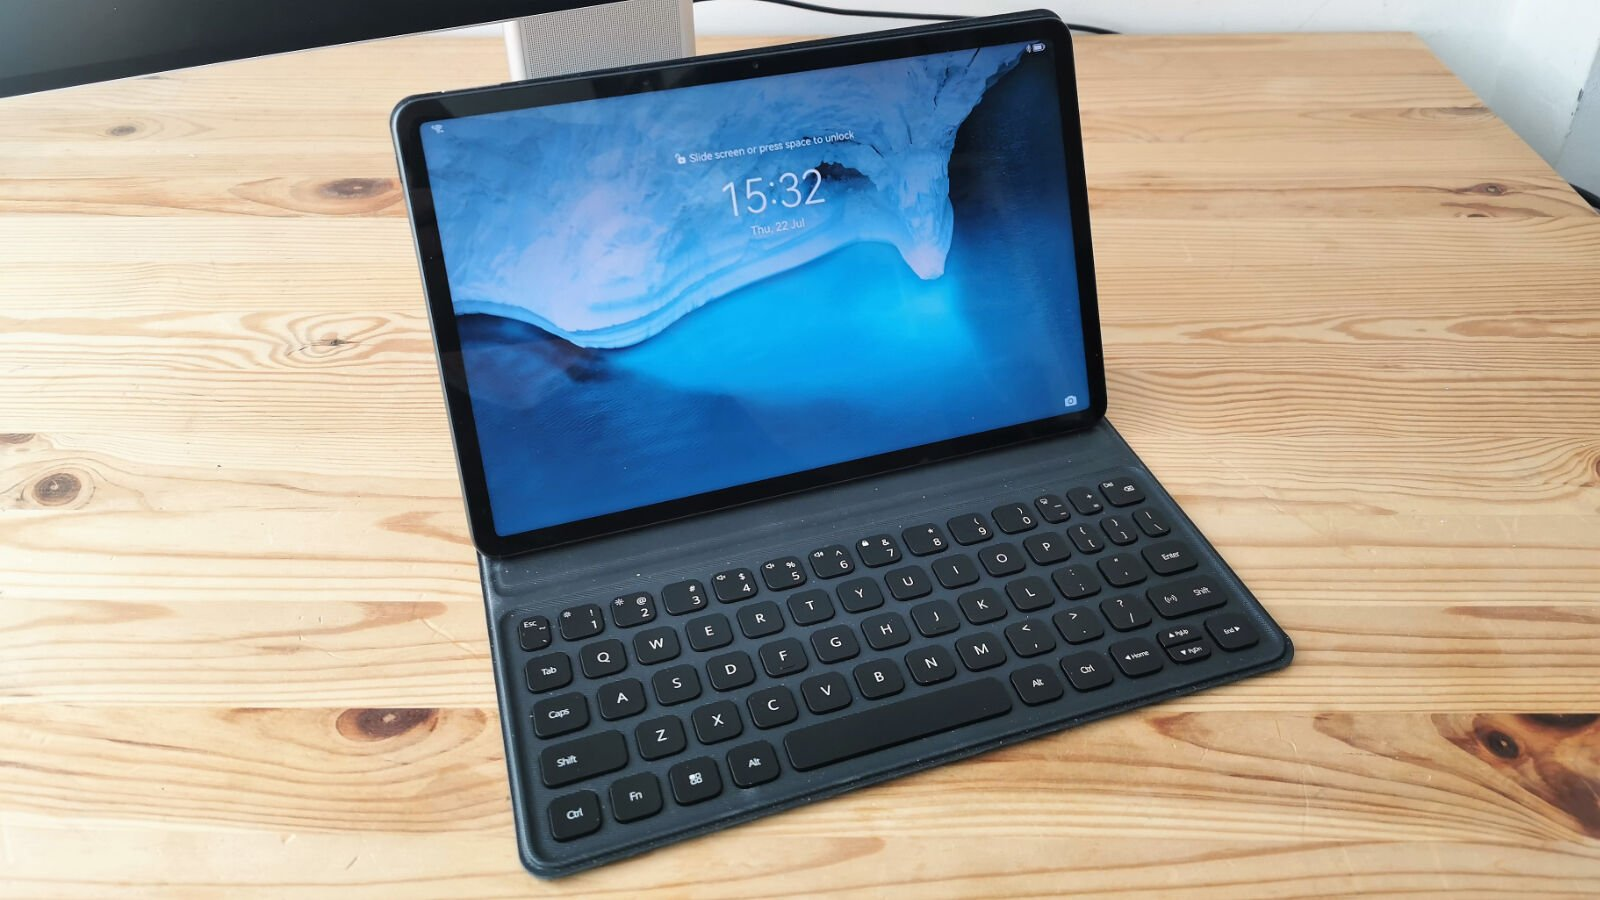 For those who can cope without Google, the MatePad 11 is an interesting option